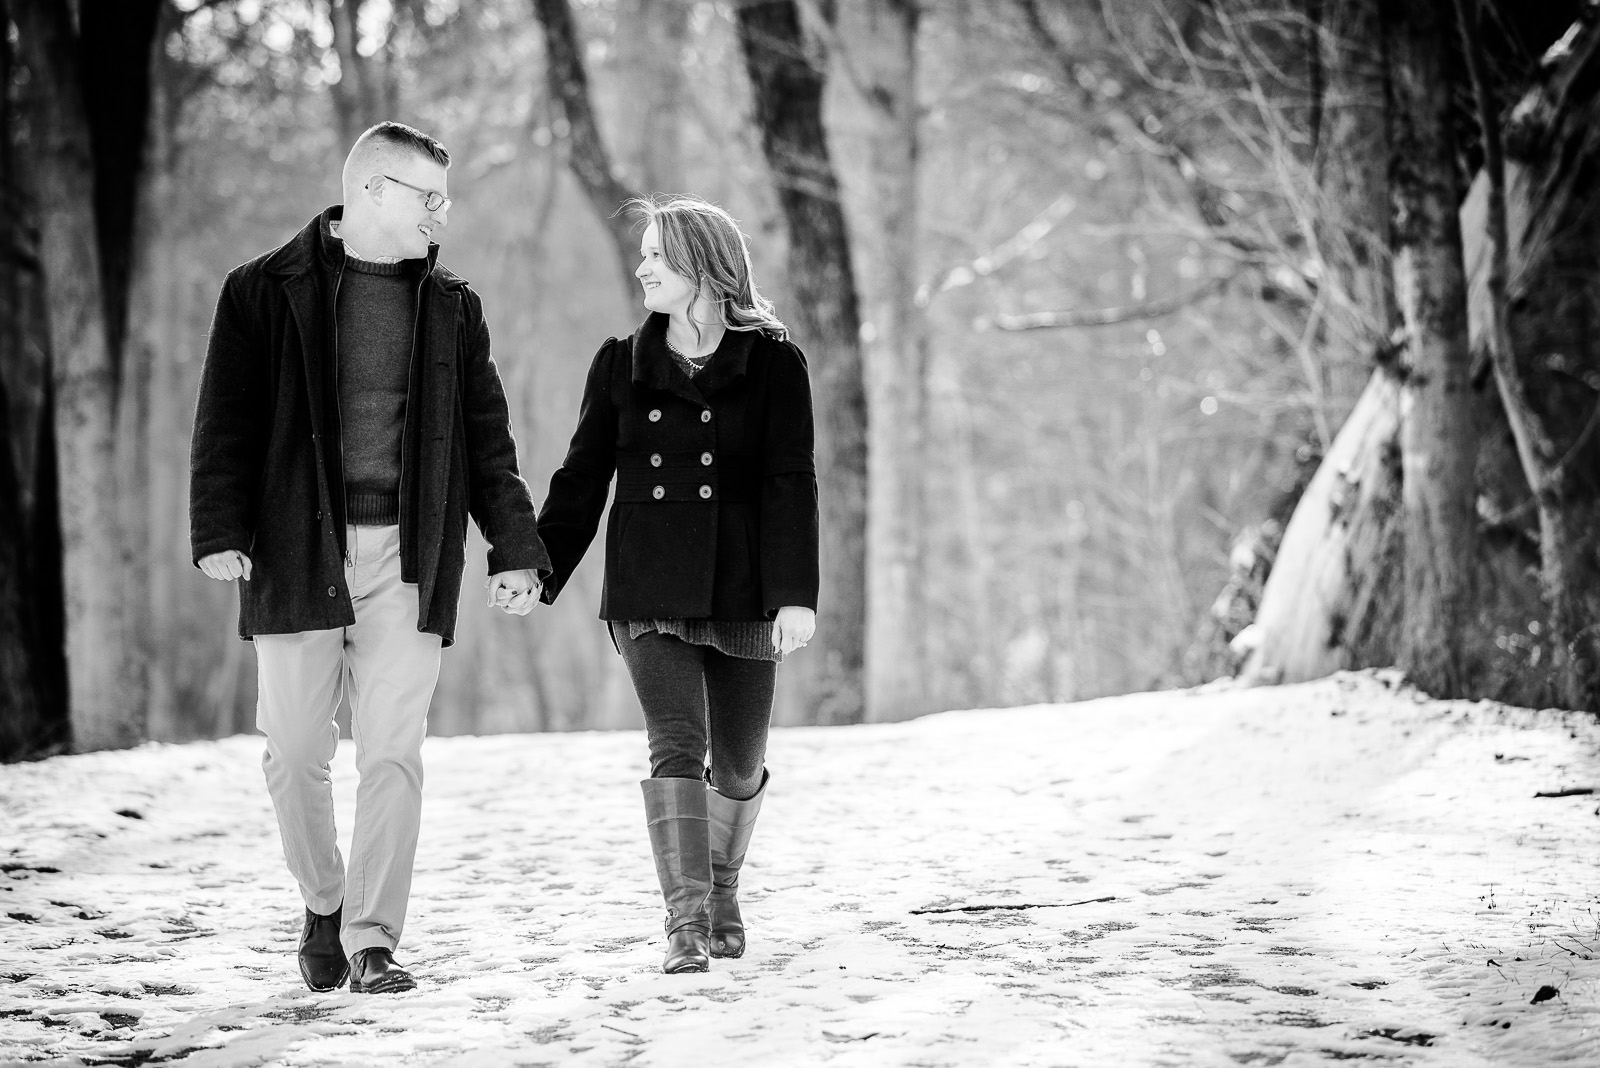 Eric_and_Christy_Photography_Engagement_Erica_Mike-4